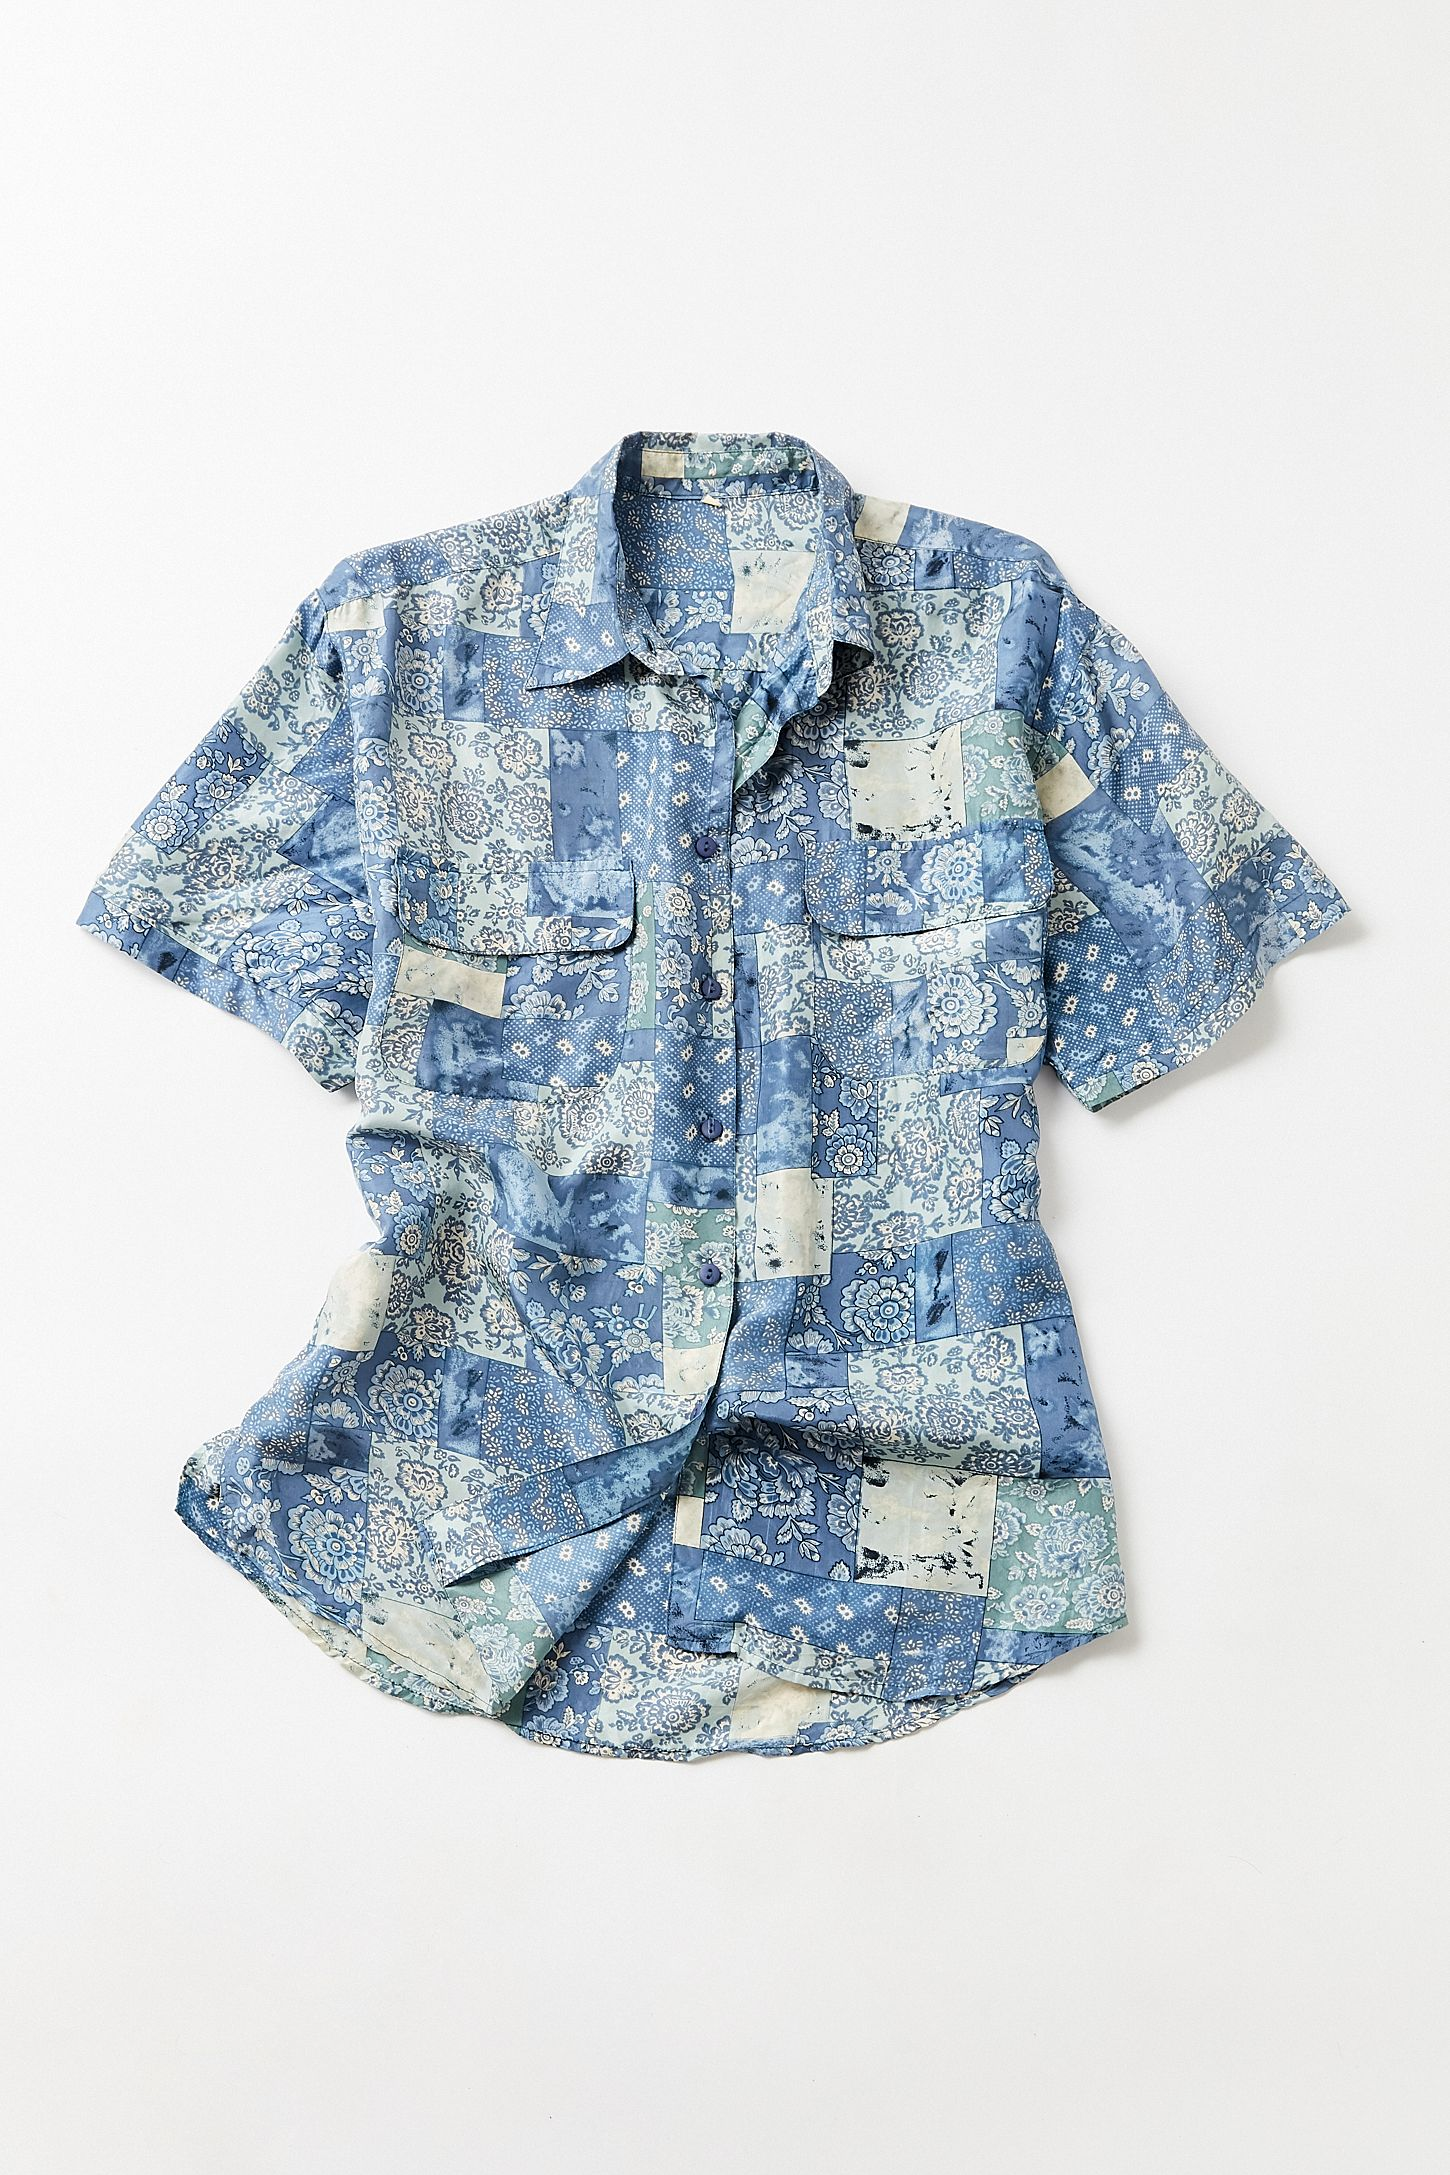 f6b71d59 Vintage '90s Blue Floral Silk Short Sleeve Button-Down Shirt | Urban ...